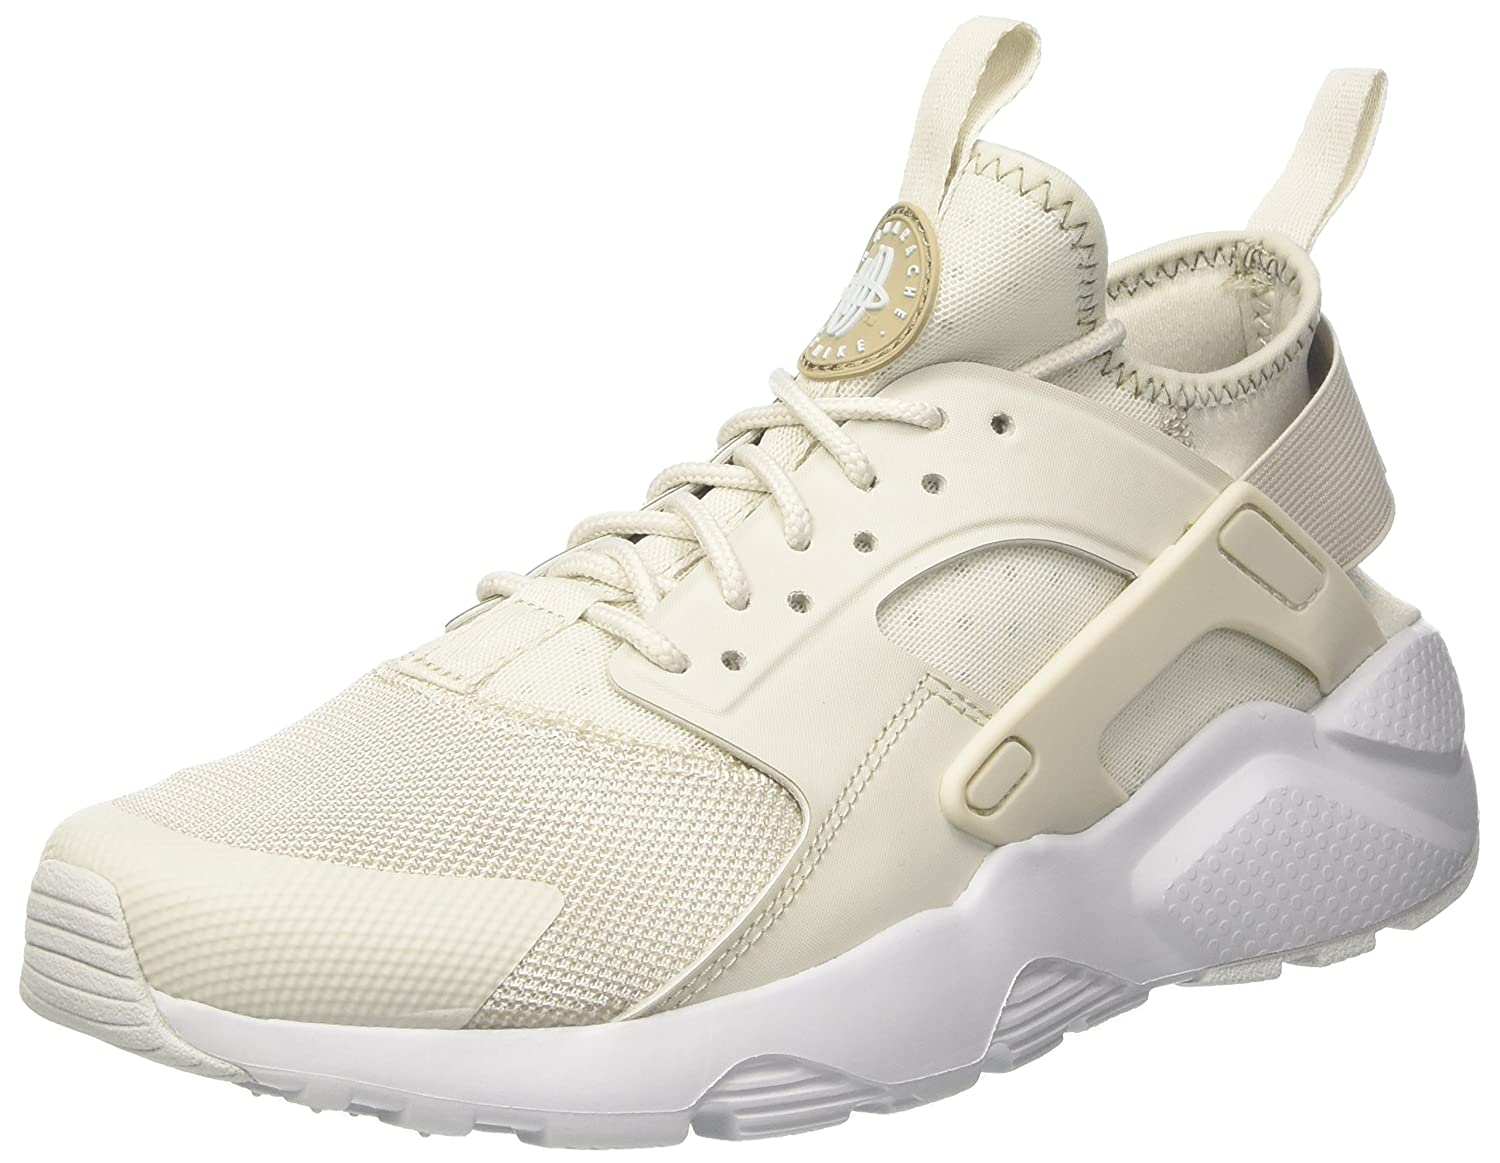 Nike Air Huarache Run Ultra, Zapatillas de Running para Hombre